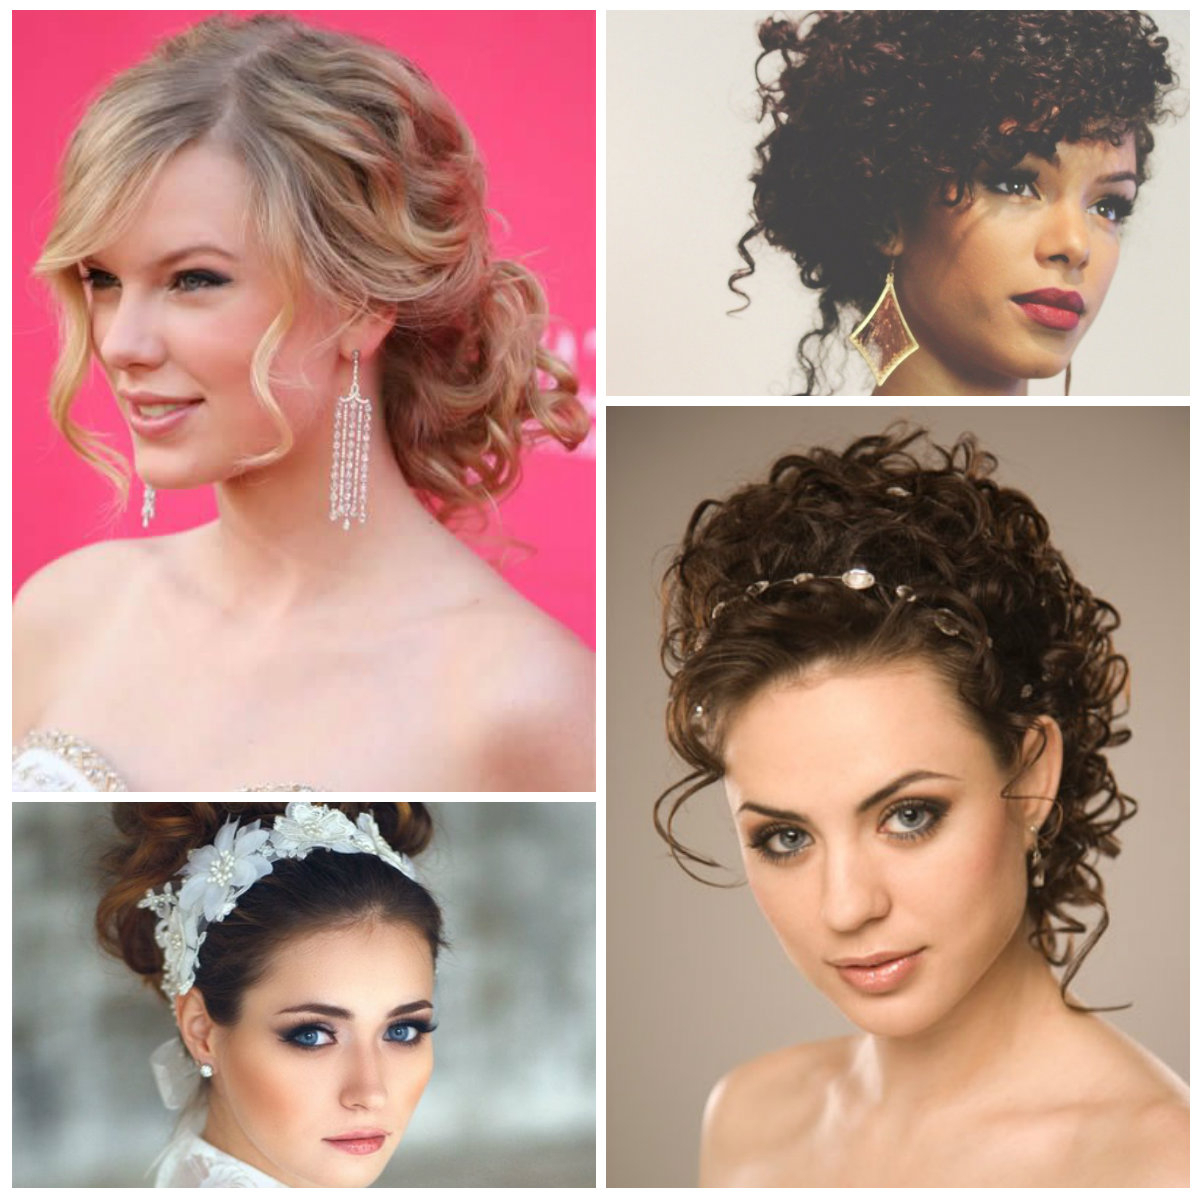 Fashionable Big Curly Bun Prom Updos With 25 Simple And Stunning Updo Hairstyles For Curly Hair – Haircuts (Gallery 20 of 20)